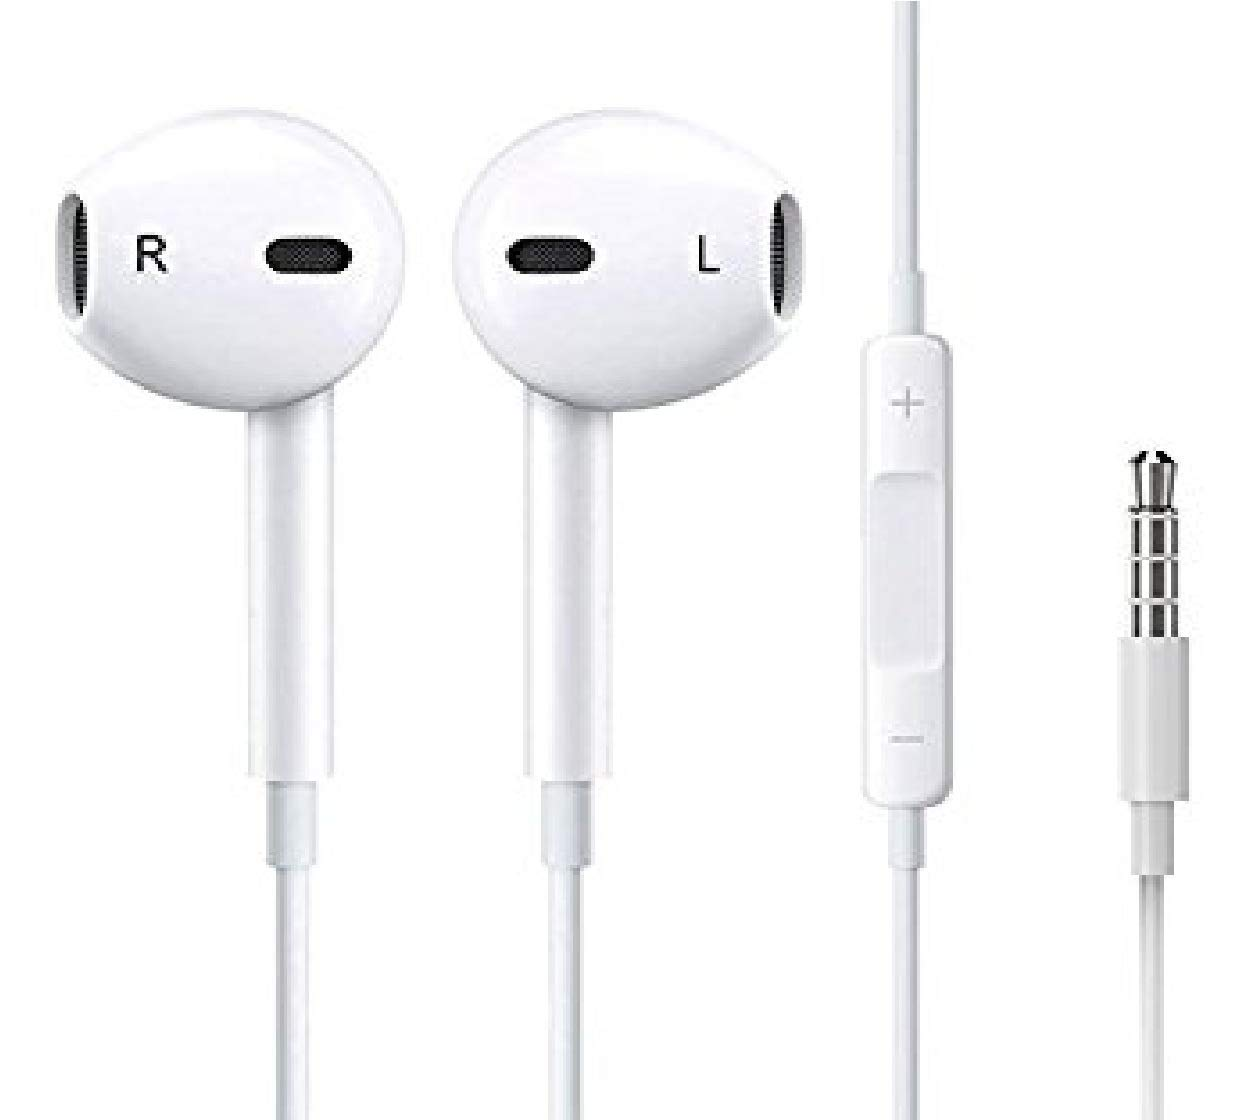 ClickAway 3.5mm Earphone Original with mic and Remote Control Earphone Compatible for APPL-e i-Phone 4 / 4s / 5 / 5s / 6 / 6s i-Pad (White)